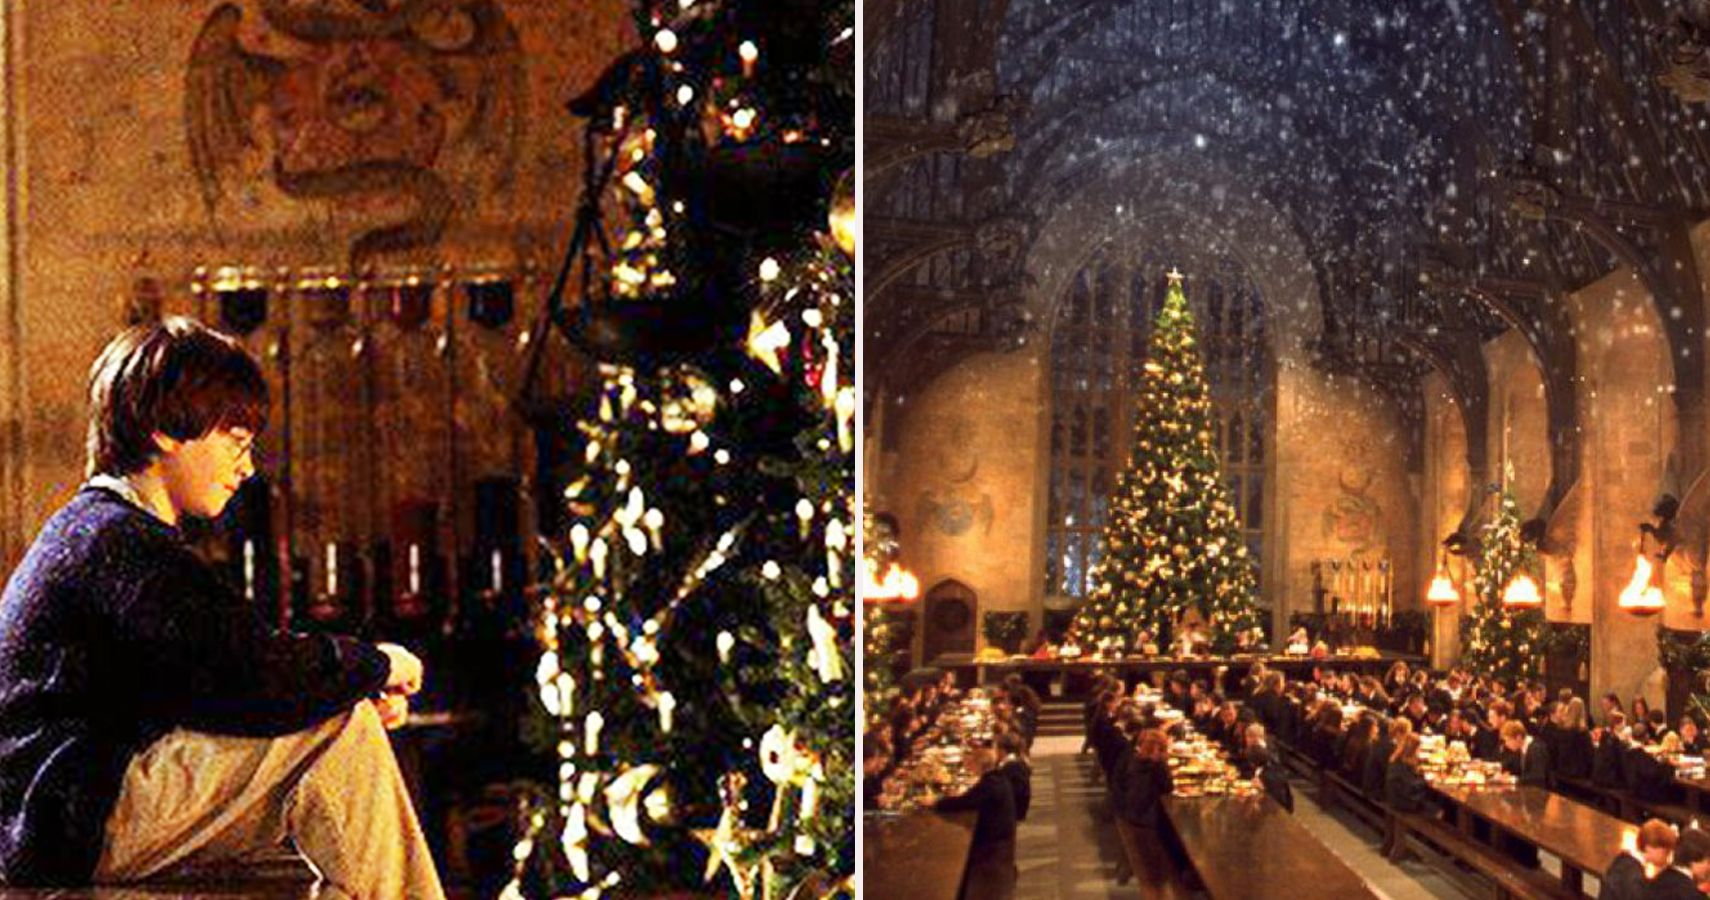 Hogwarts At Christmas 2021 Harry Potter 15 Scenes That Make Them The Perfect Christmas Movies